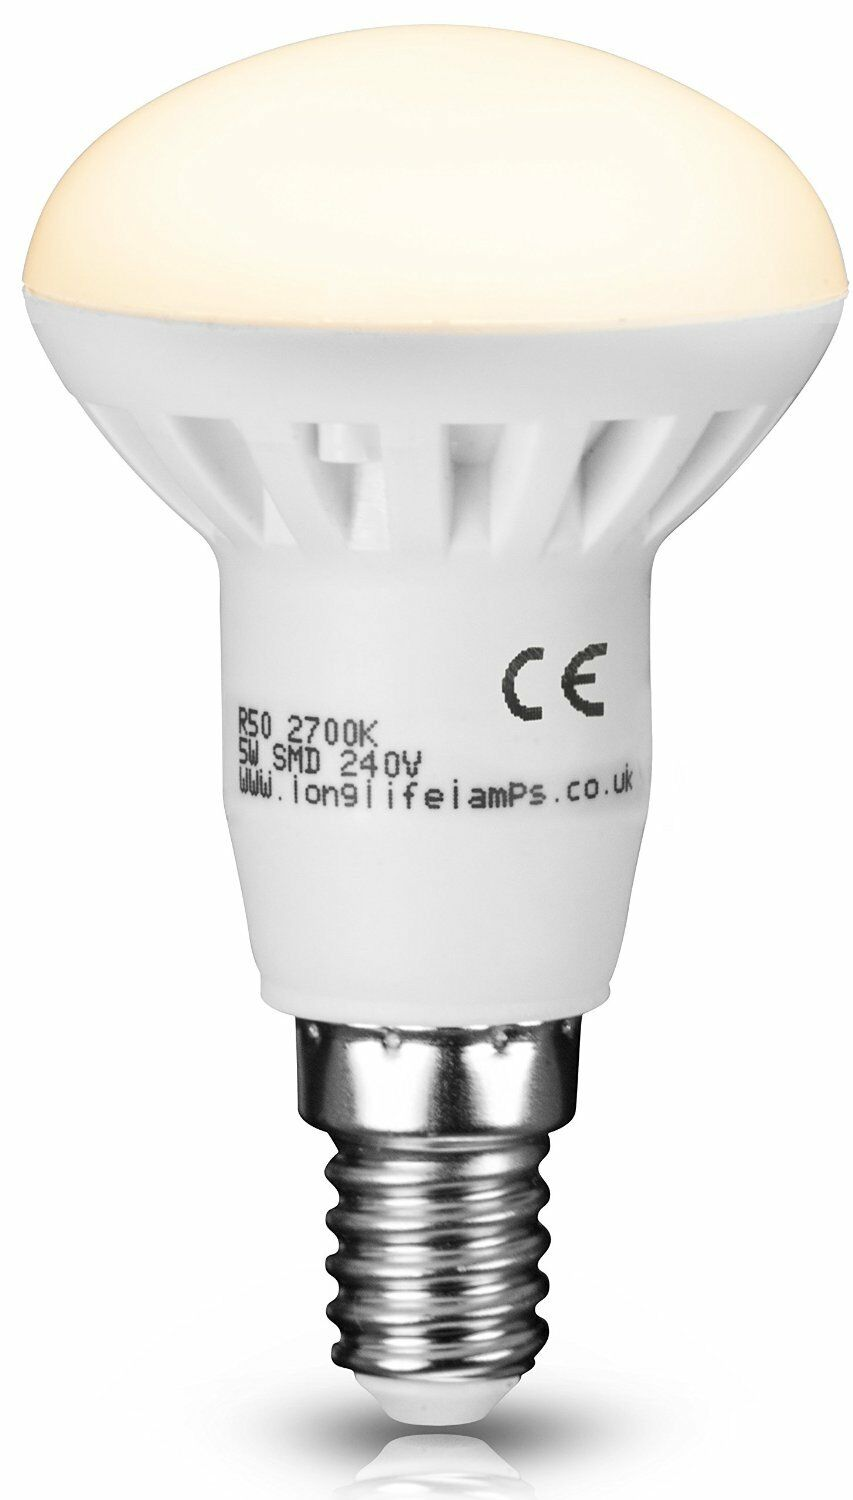 r50 led 5w e14 replacment for reflector r50 light bulb energy saving 400 lumens ebay. Black Bedroom Furniture Sets. Home Design Ideas